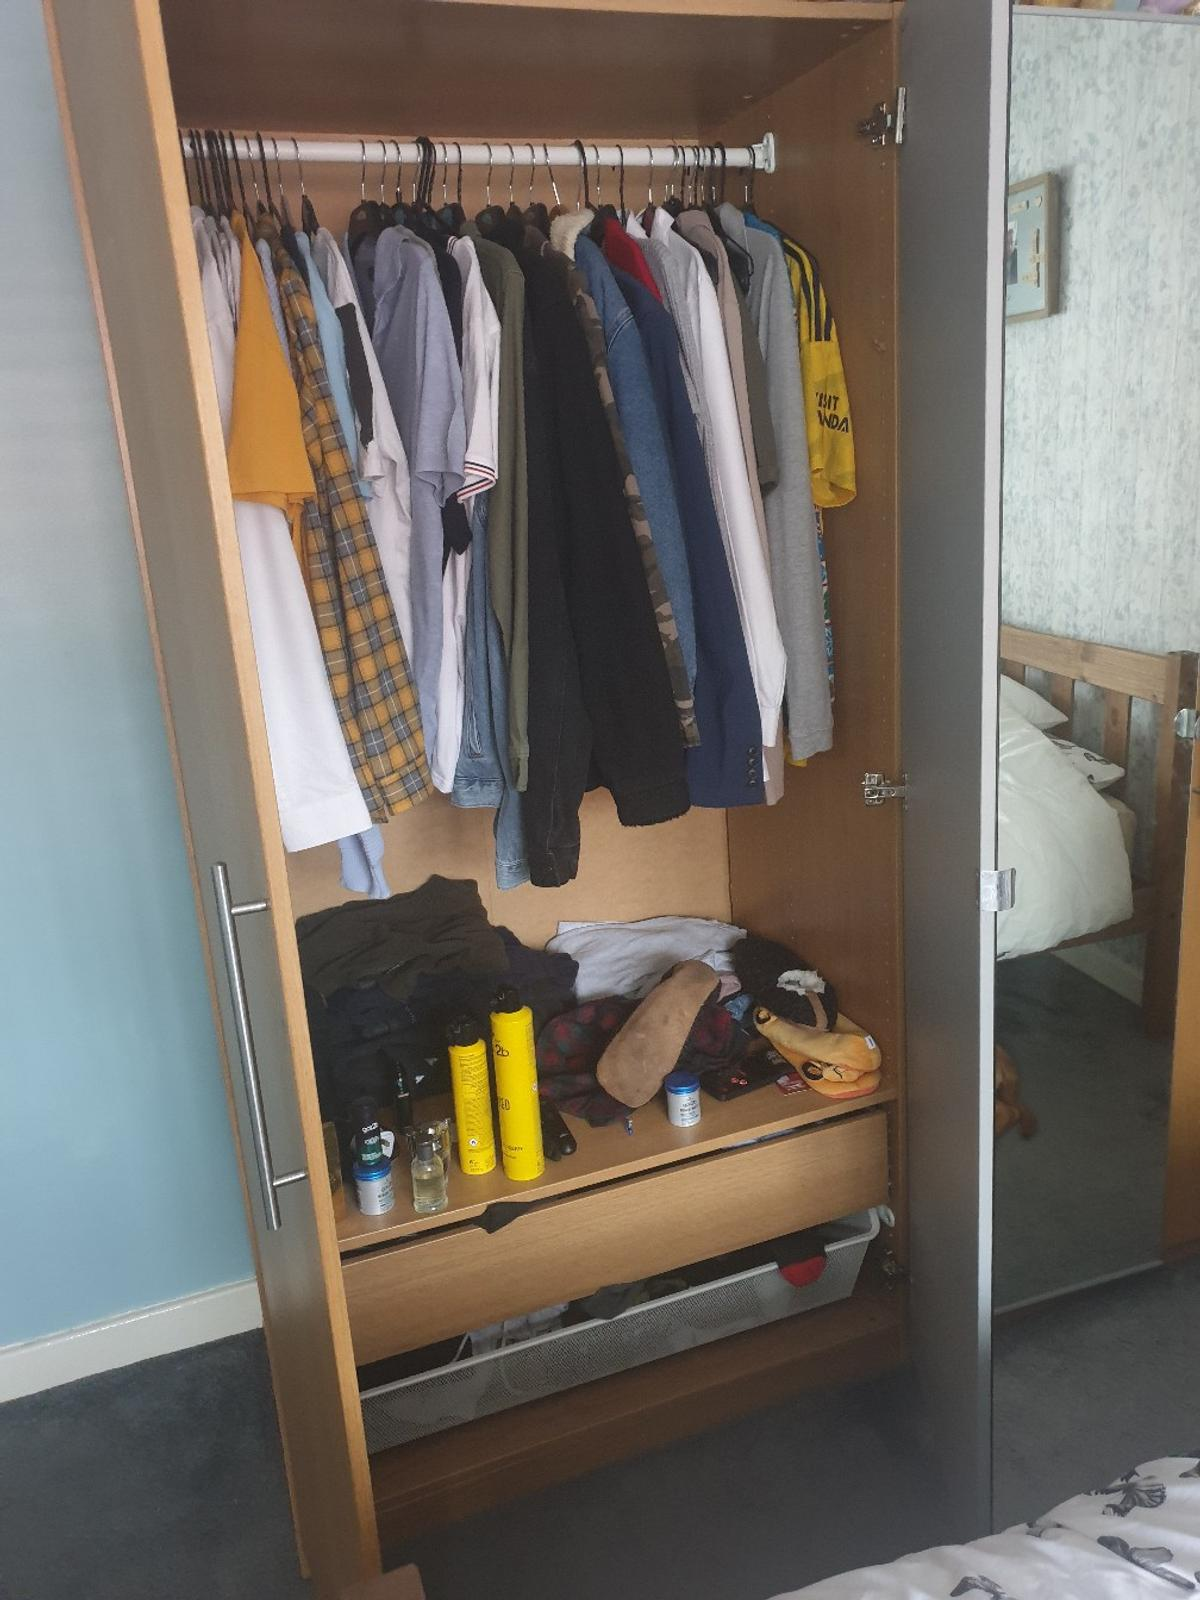 ikea double, 4 door wardrobes, slight wear and tear over time but still in good condition one mirror door off the hinge, easy fix 2 mirror doors 2 normal doors 2 draws in each shelf in each not seen in picture as we didnt have them in but still have them. will be dismantled £70